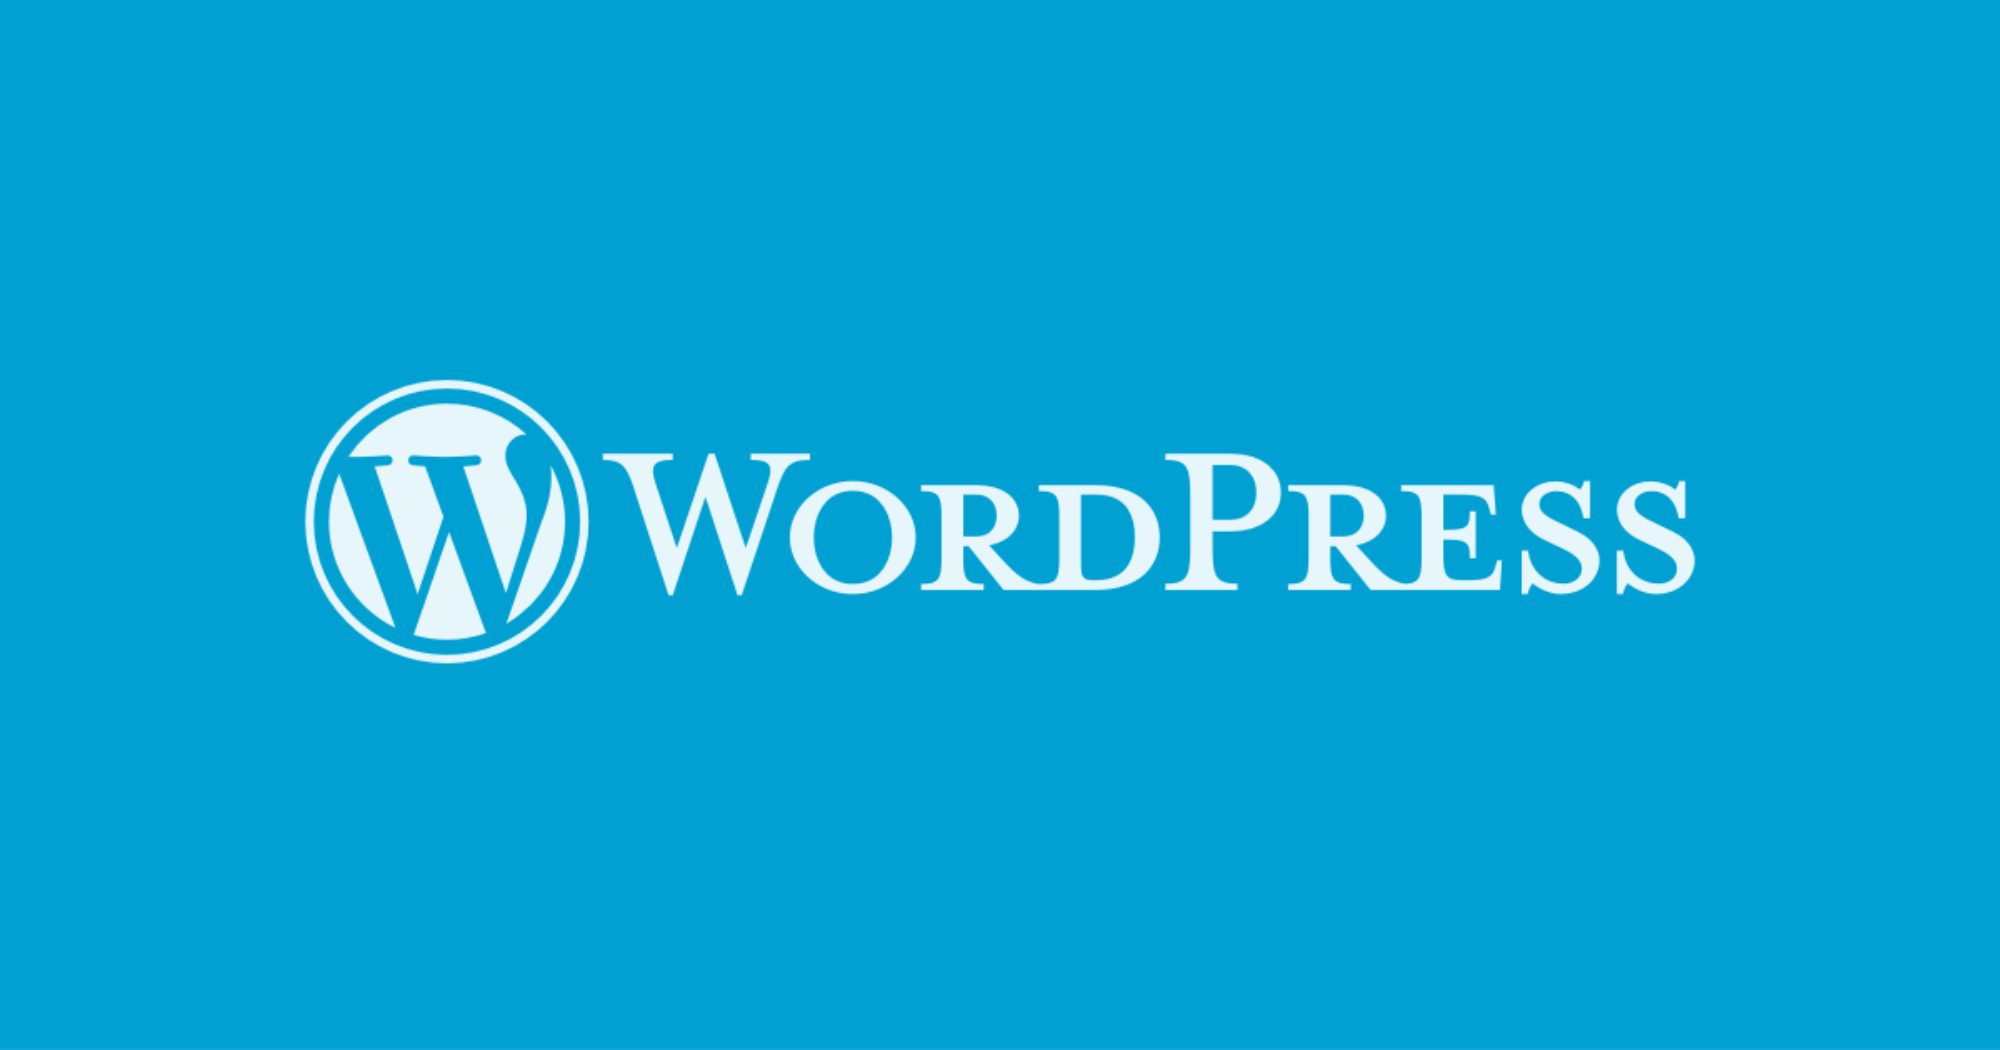 WordPress 4.0 in a nutshell